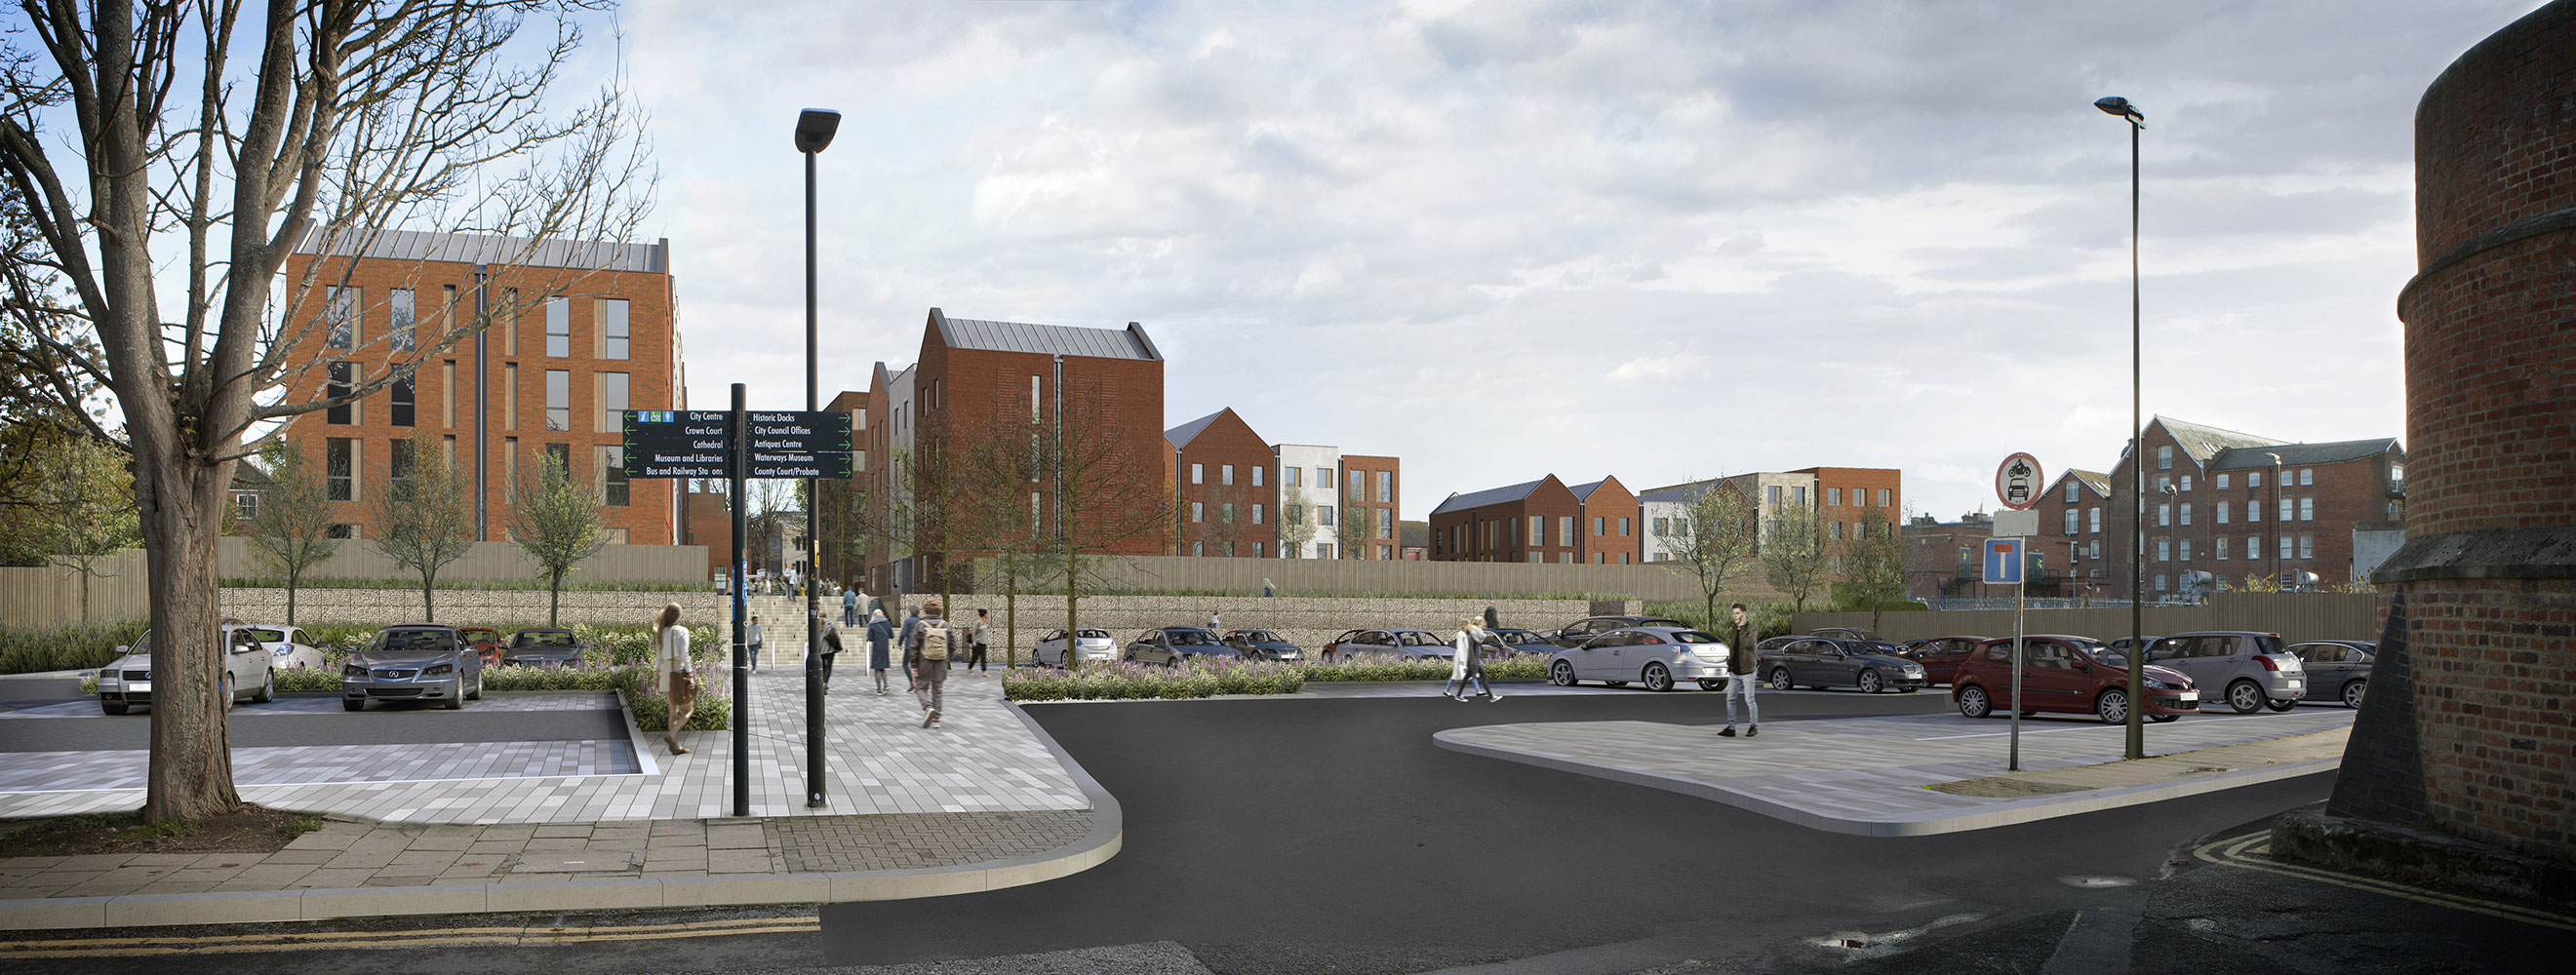 University of Gloucestershire Proposed Student Accommodation & Car Park